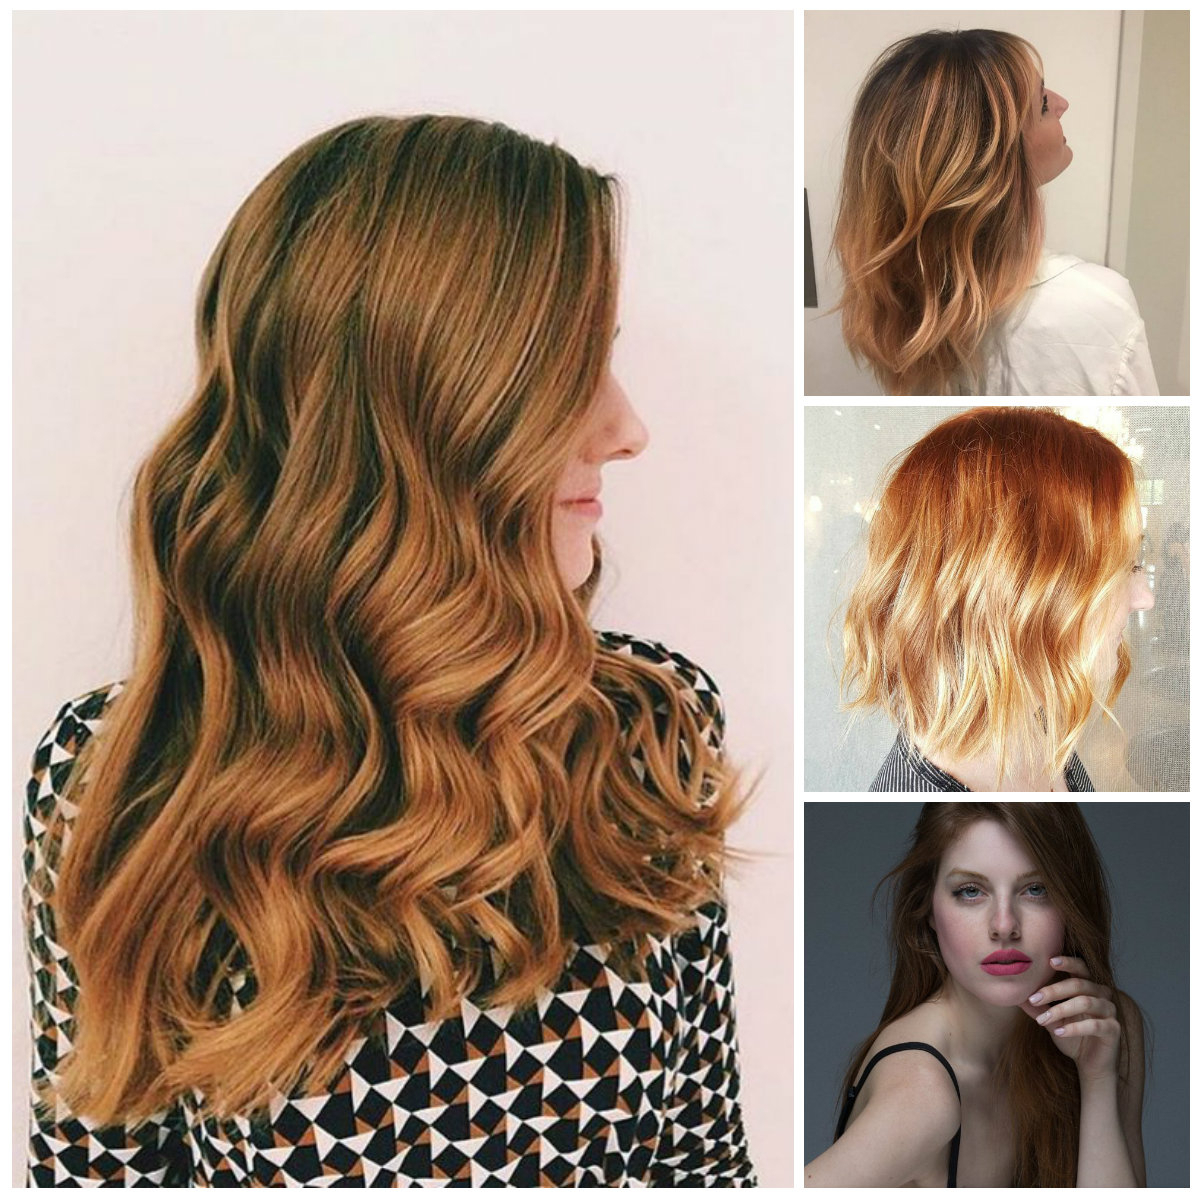 2019 Haircuts Throughout Most Recent Long Feathered Strawberry Blonde Haircuts (View 2 of 20)